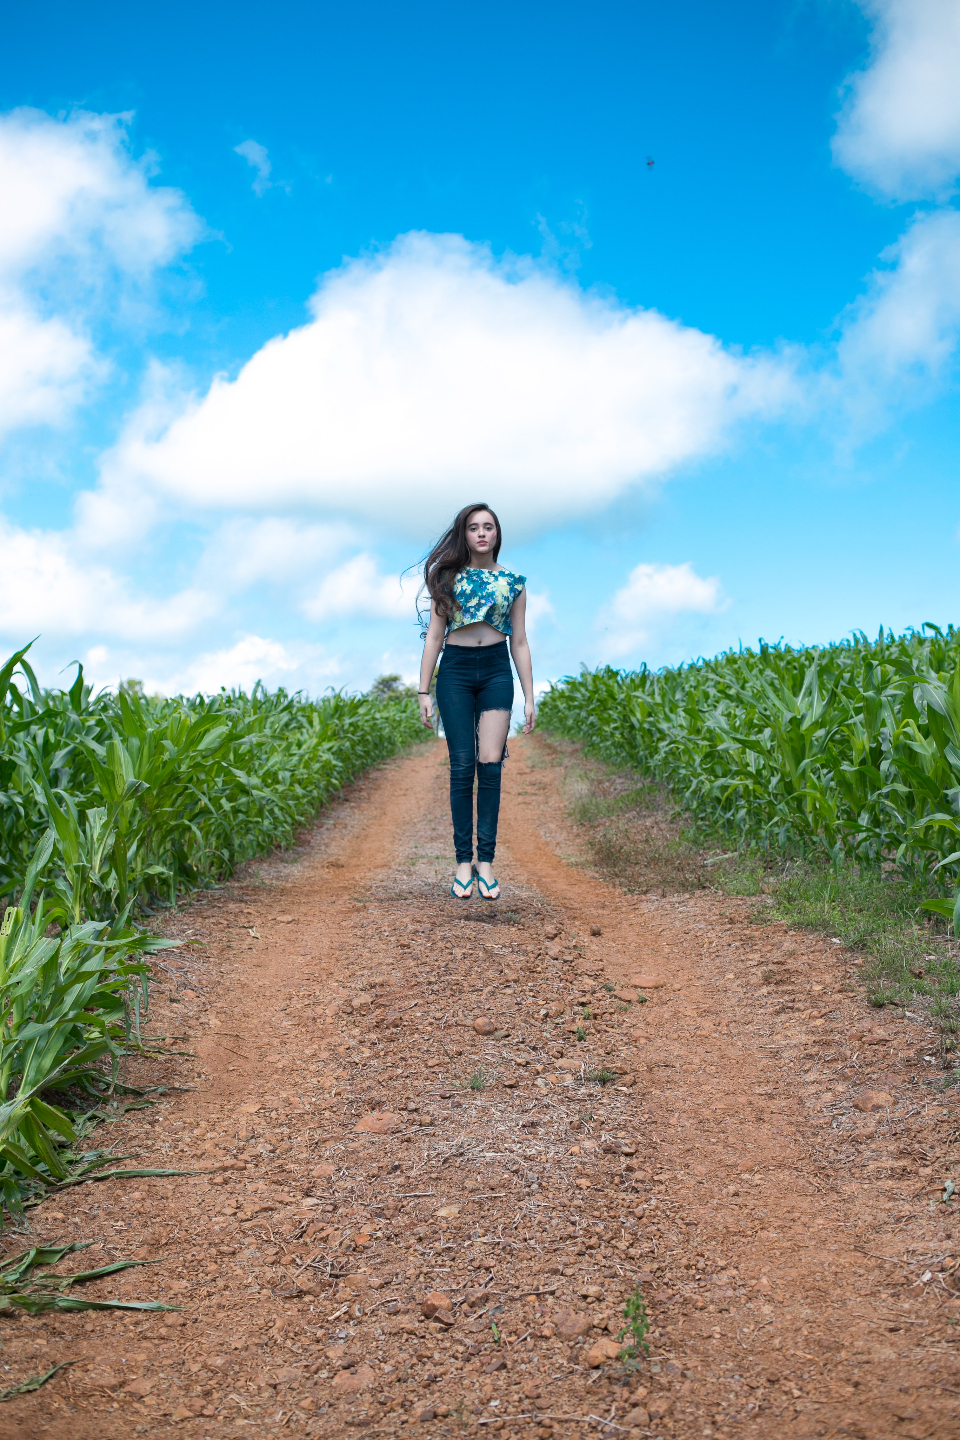 girl jumping field farm crops path track woman female summer blue sky clouds stones